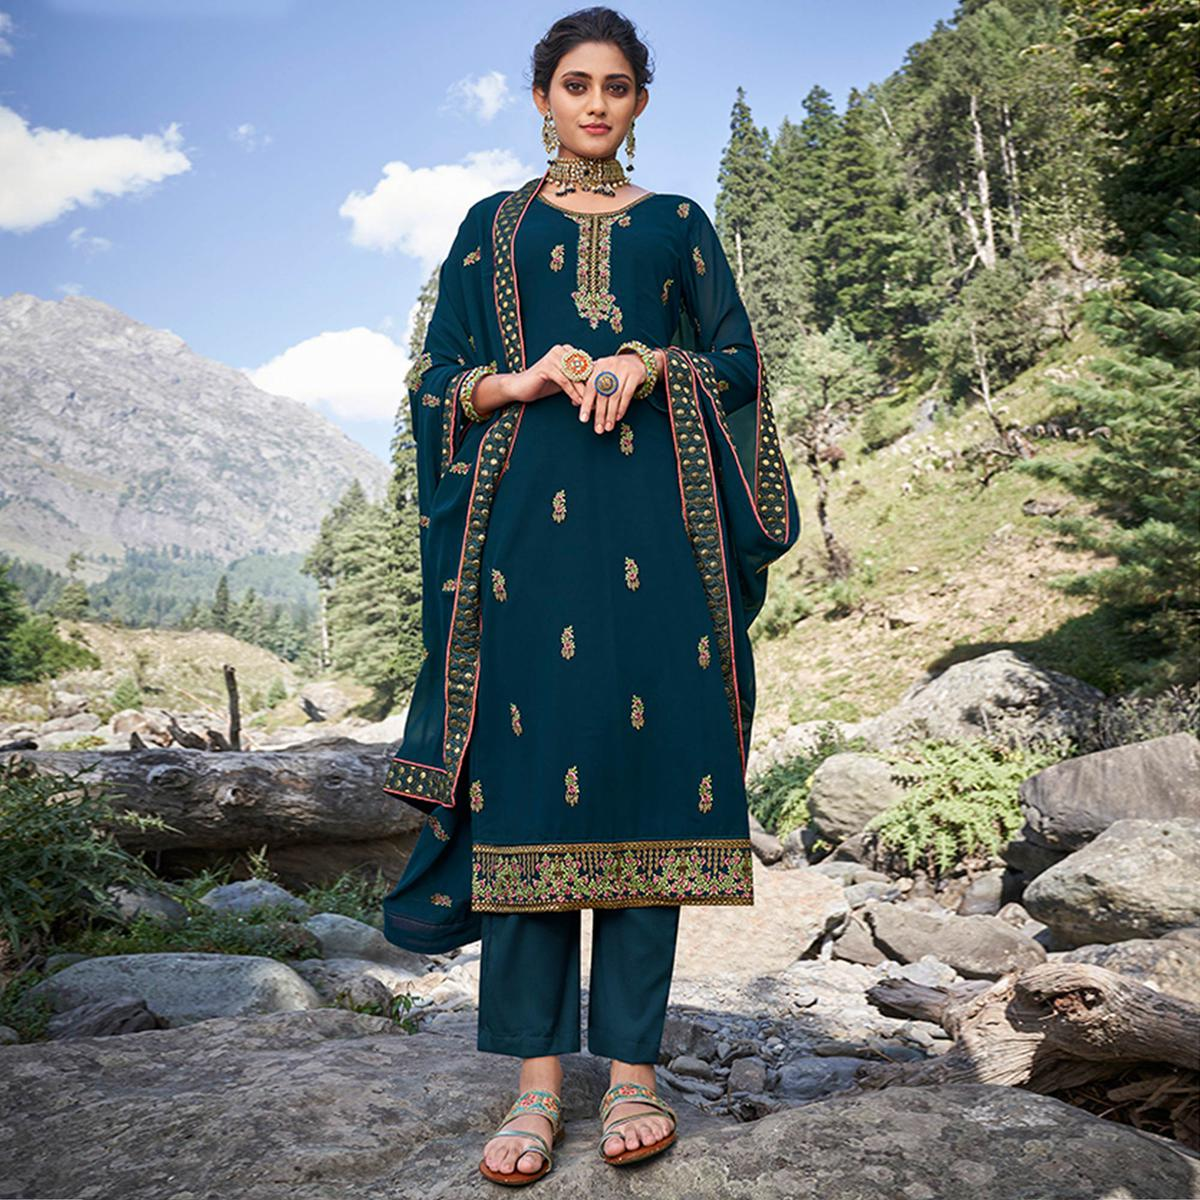 Adorning Peacock Blue Colored Party Wear Floral Embroidered Georgette Suit